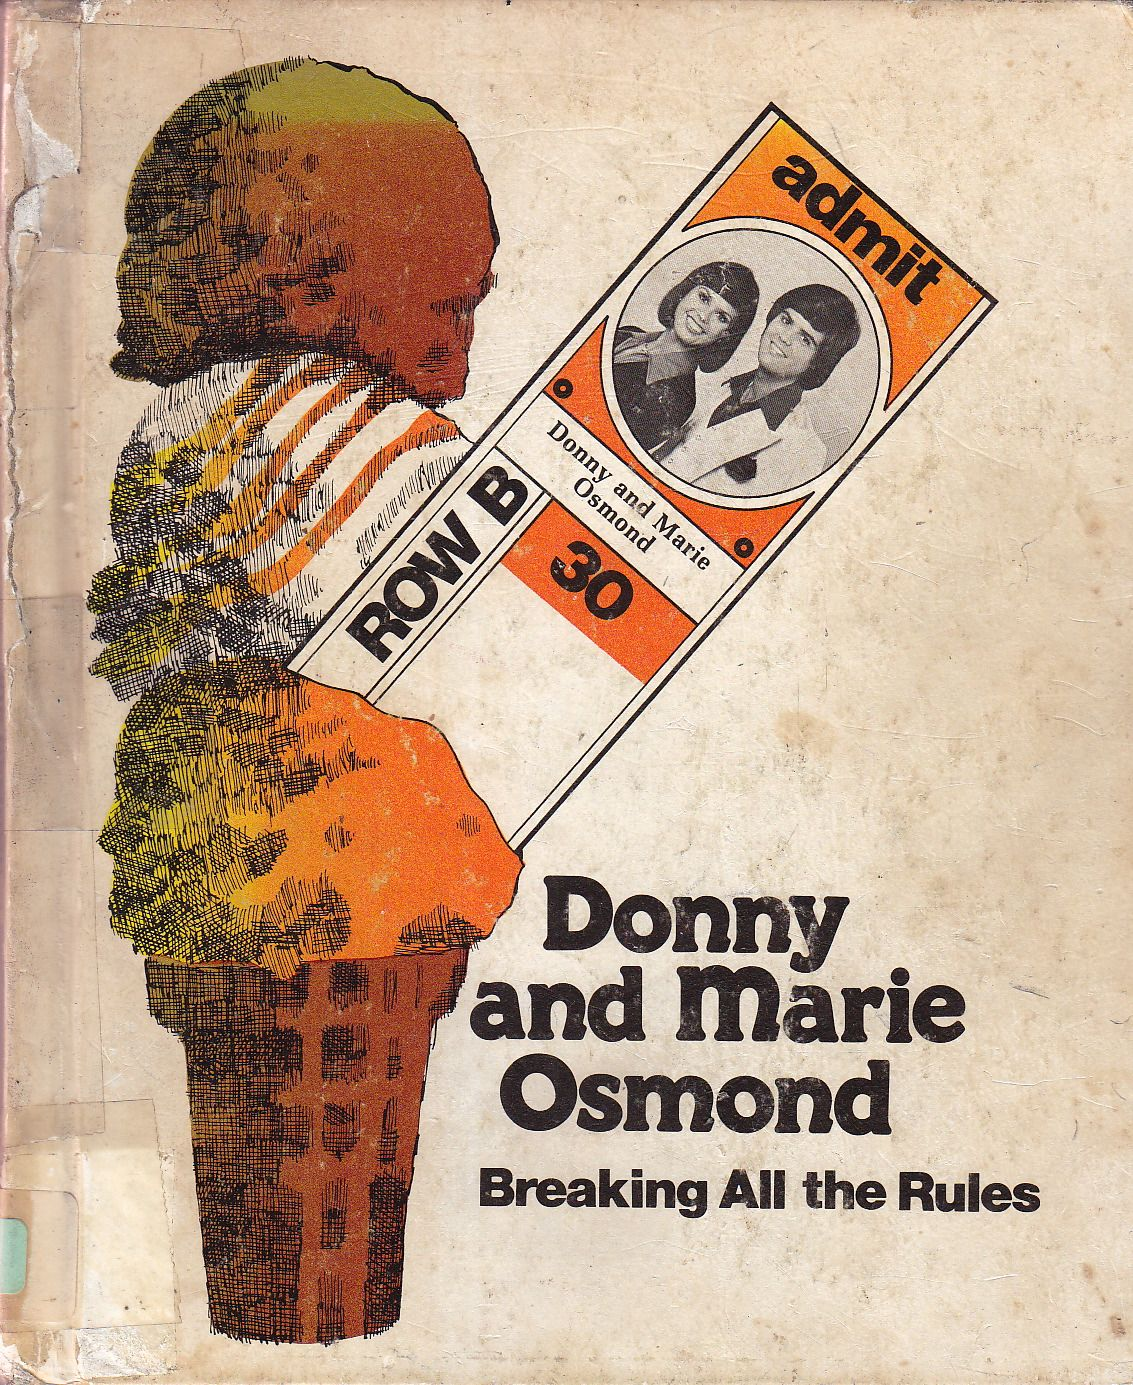 Donny and Marie Osmond  Breaking All the Rules.   More: http://www.bookjournals.com